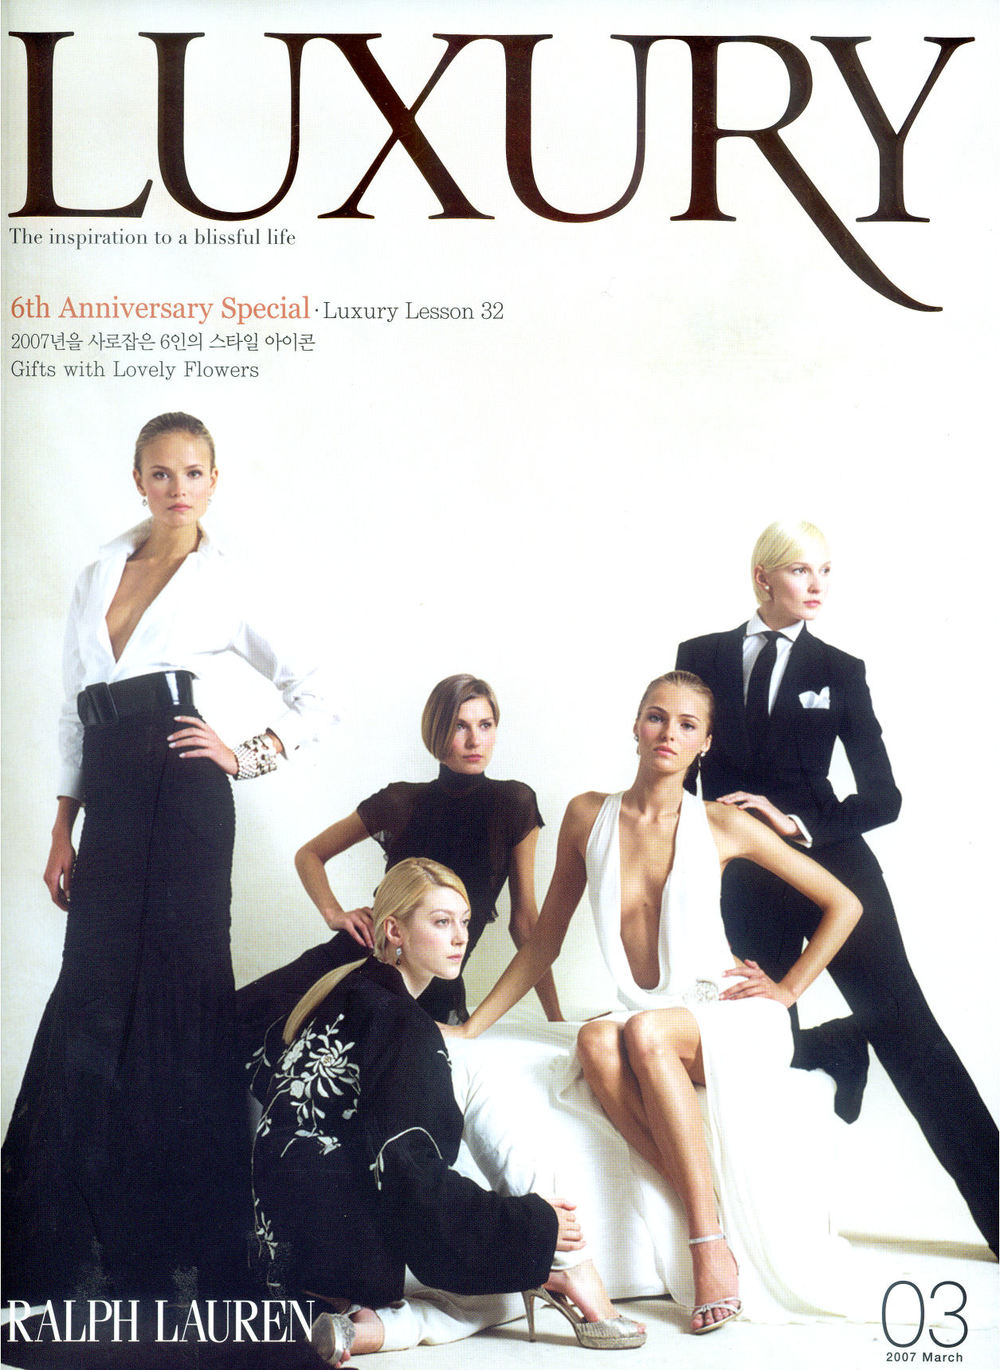 2007-3 Luxury cover.jpg